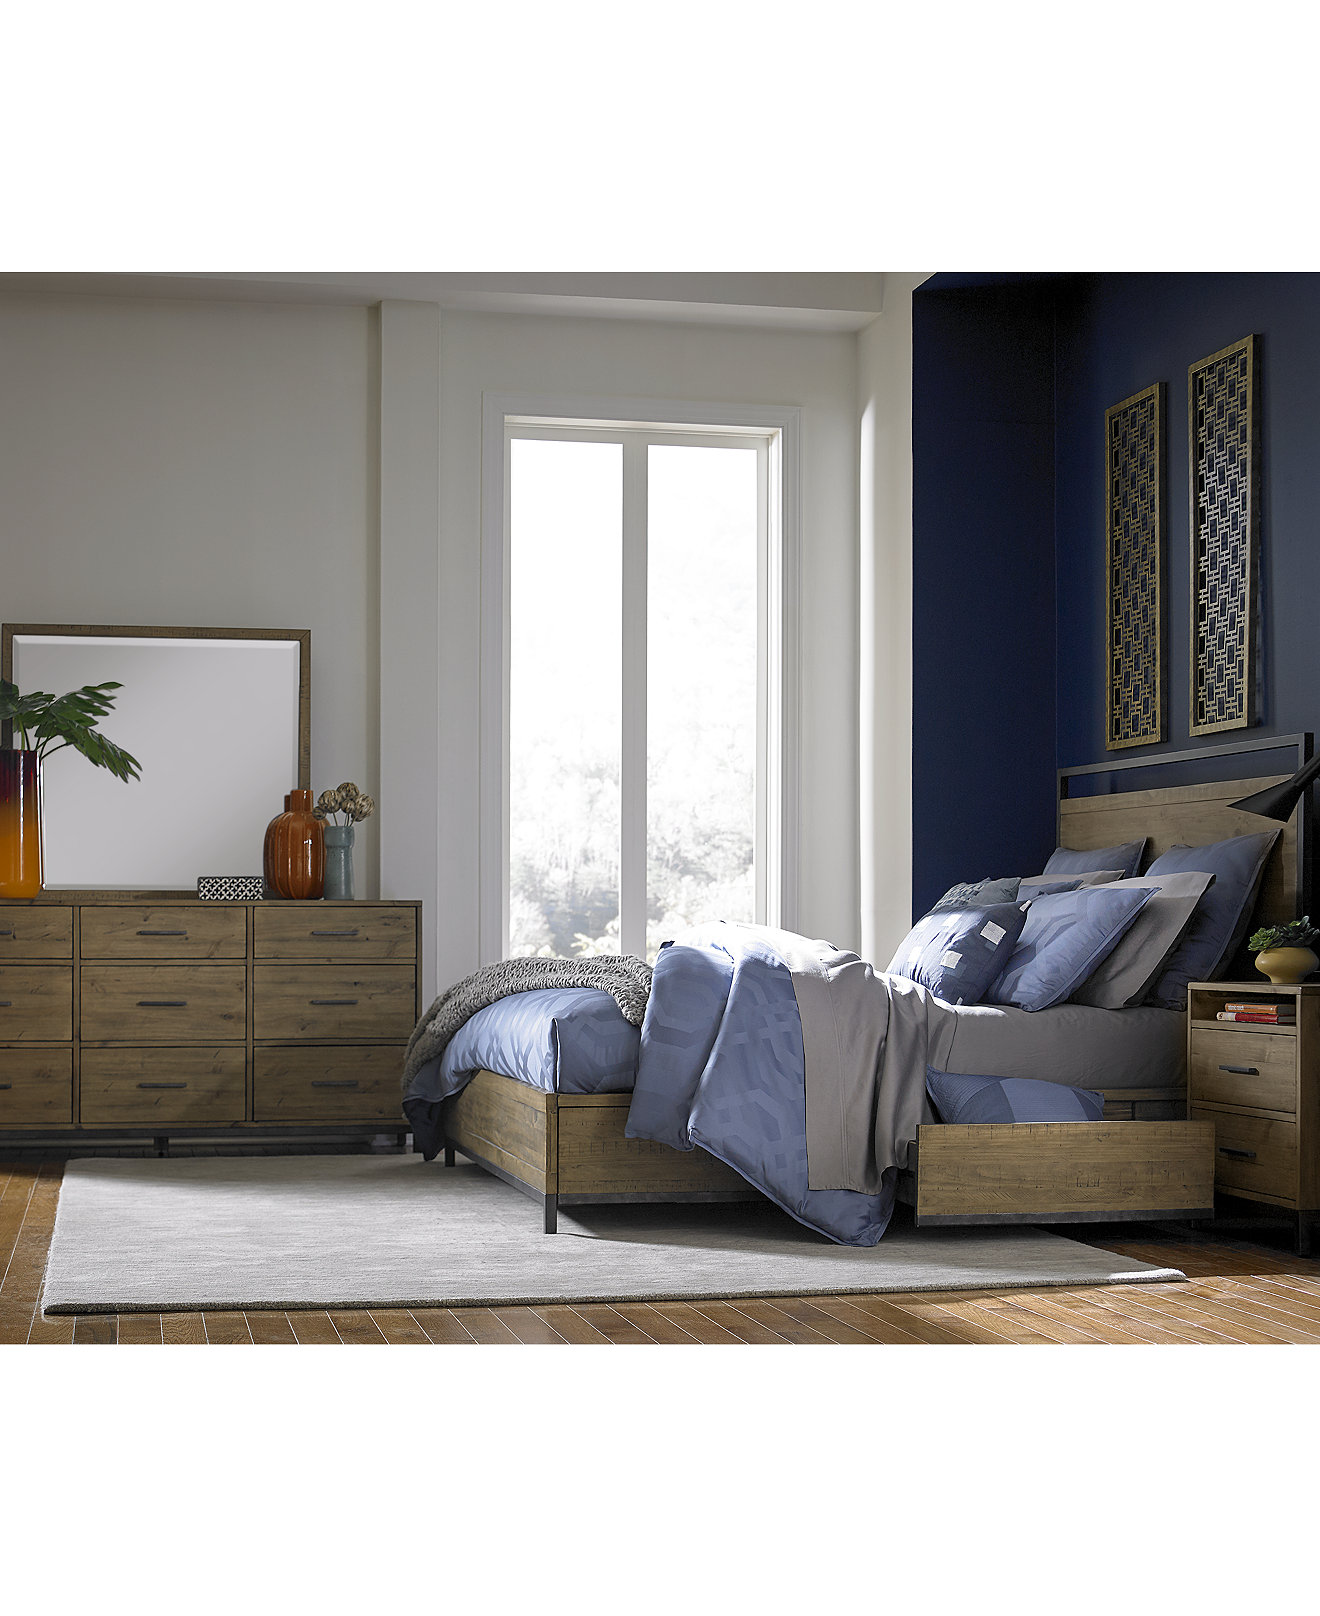 Kids Bedroom Furniture Packages Bedroom Furniture Sets Macys